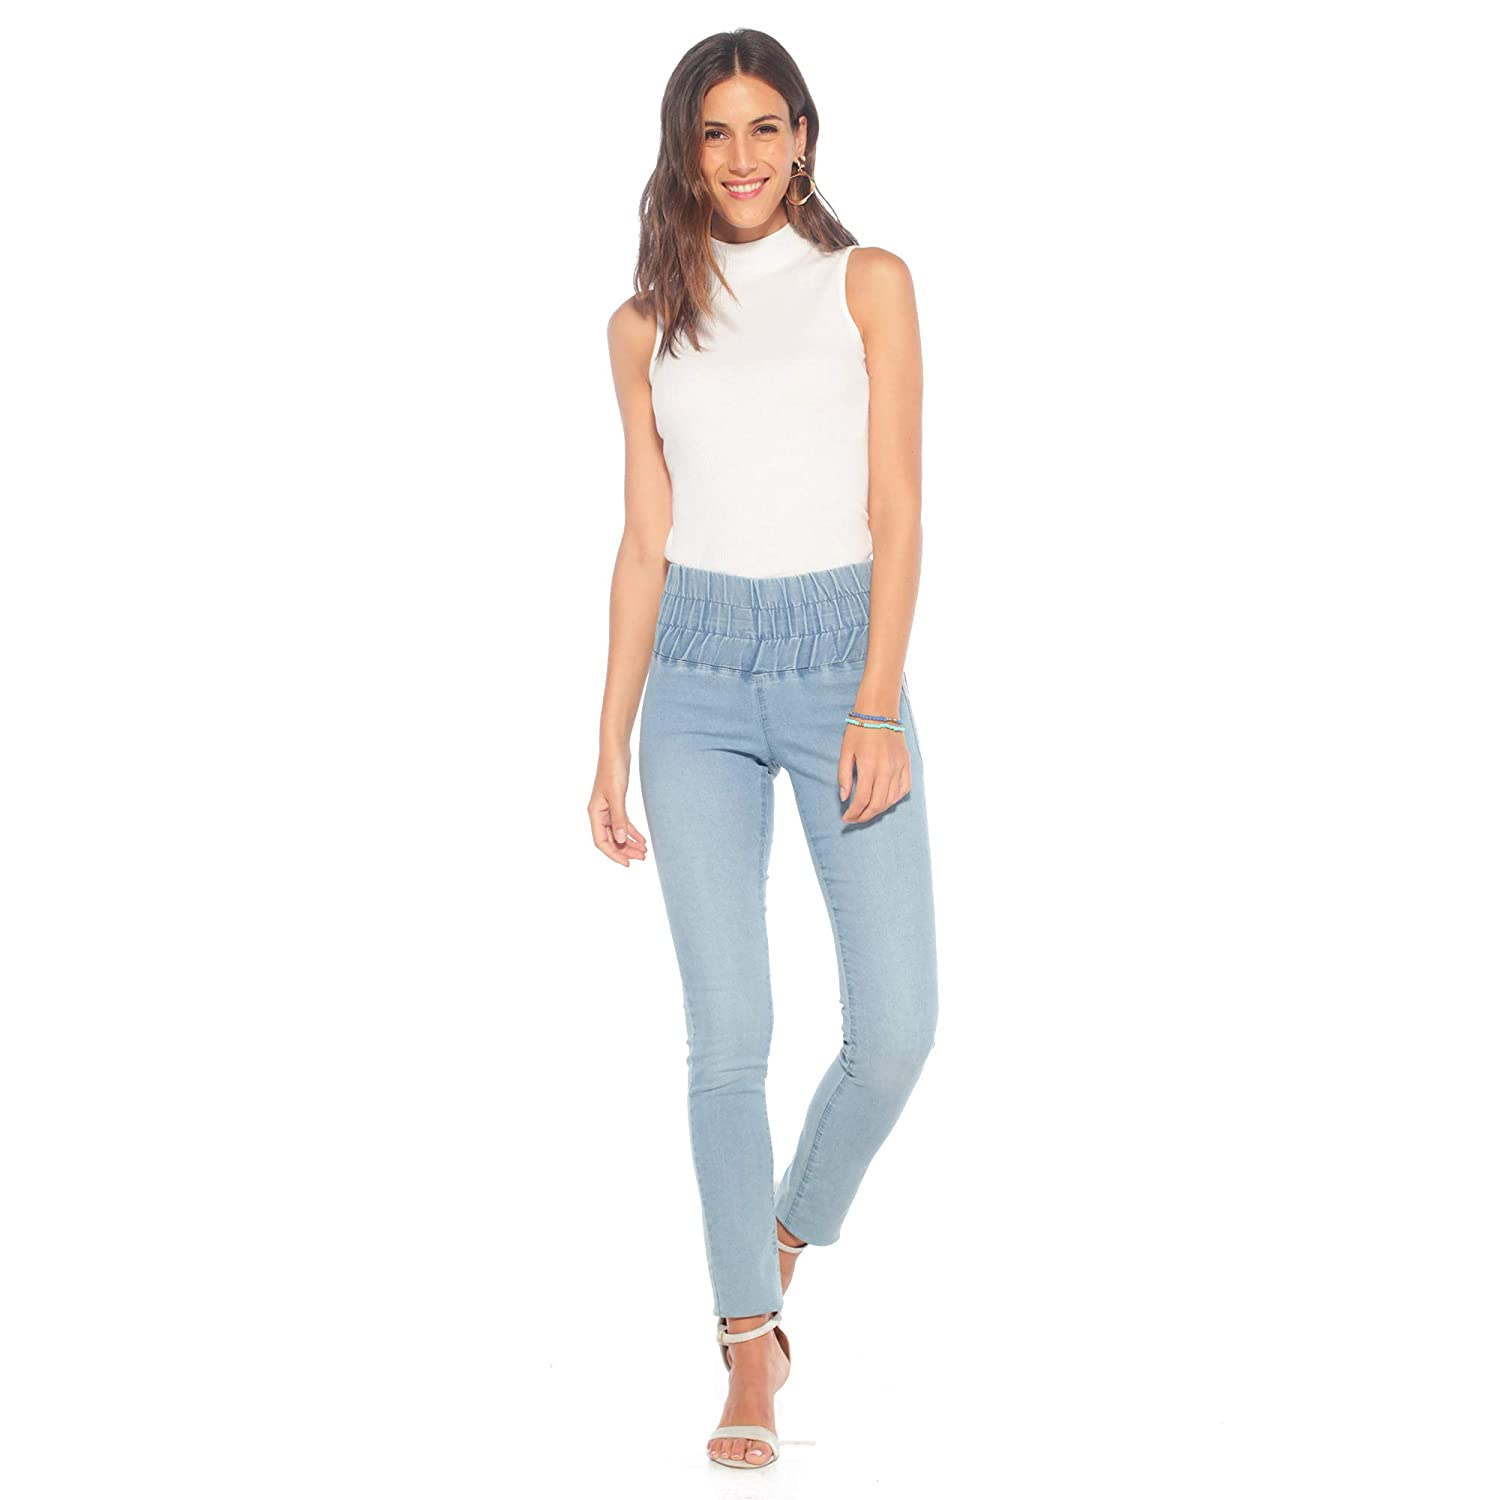 VENCA Jegging Skinny fit Mujer by Vencastyle - 114068